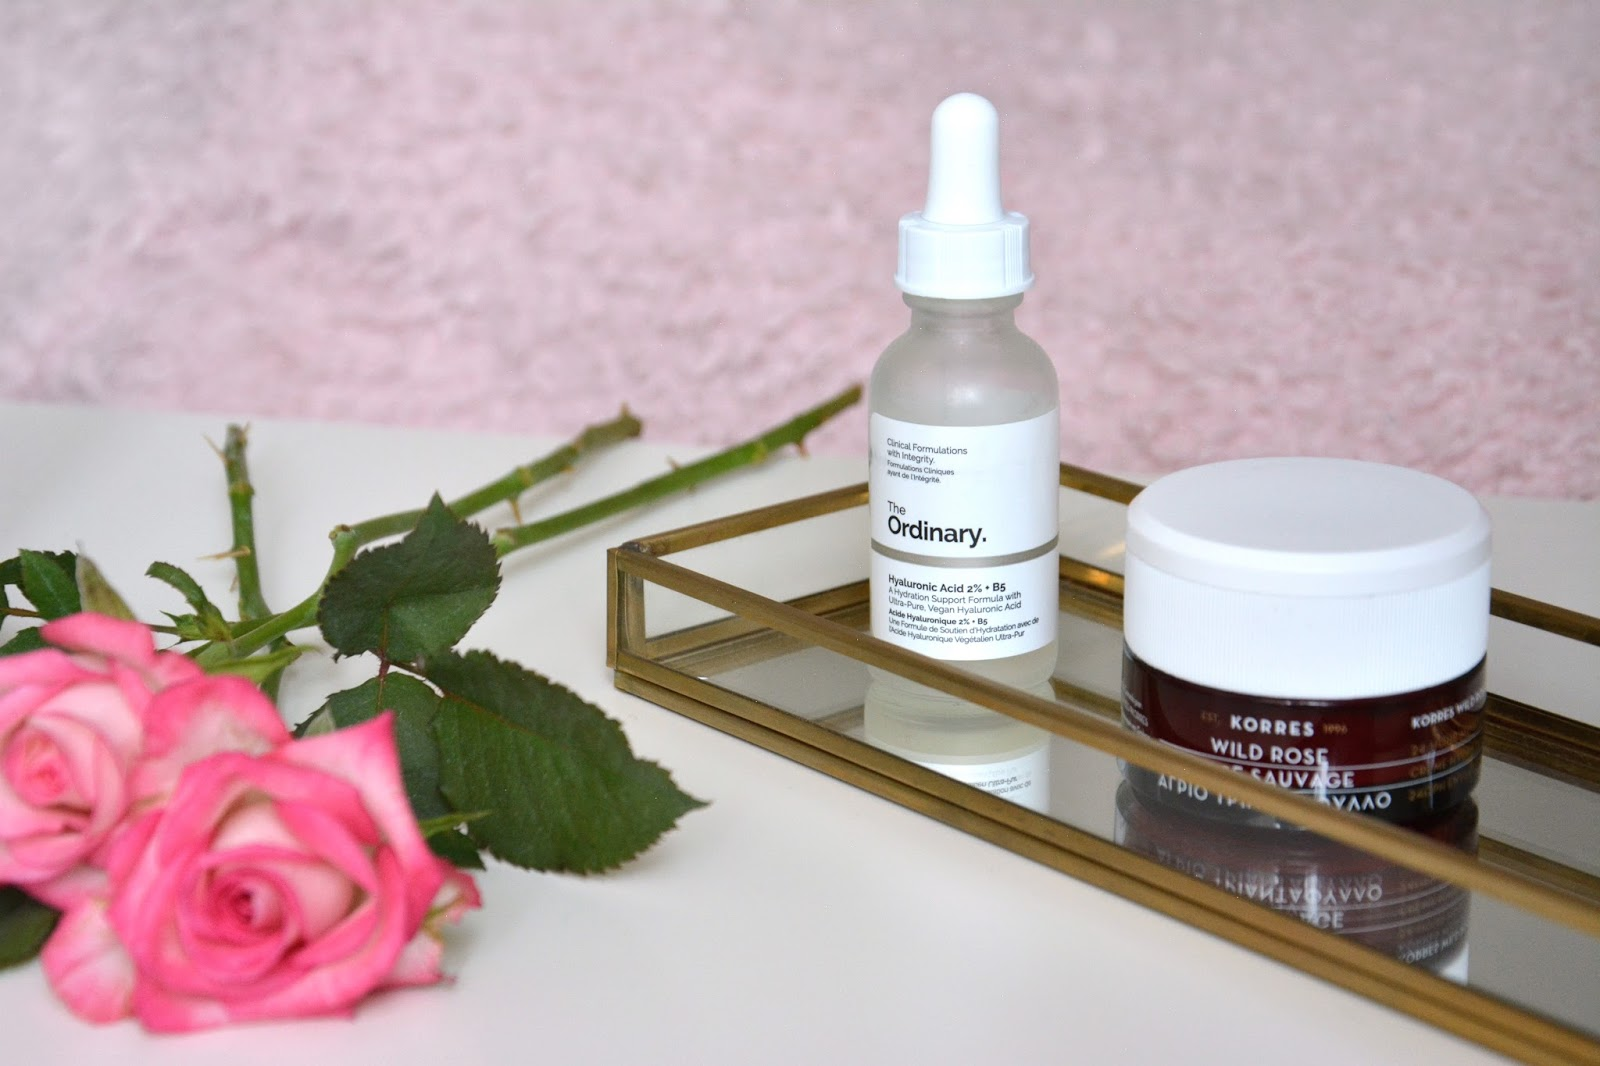 Pink Roses; Korres Wild Rose 24h Moisturiszing & Brightening Cream; The Ordinary Hyaluronic Acid